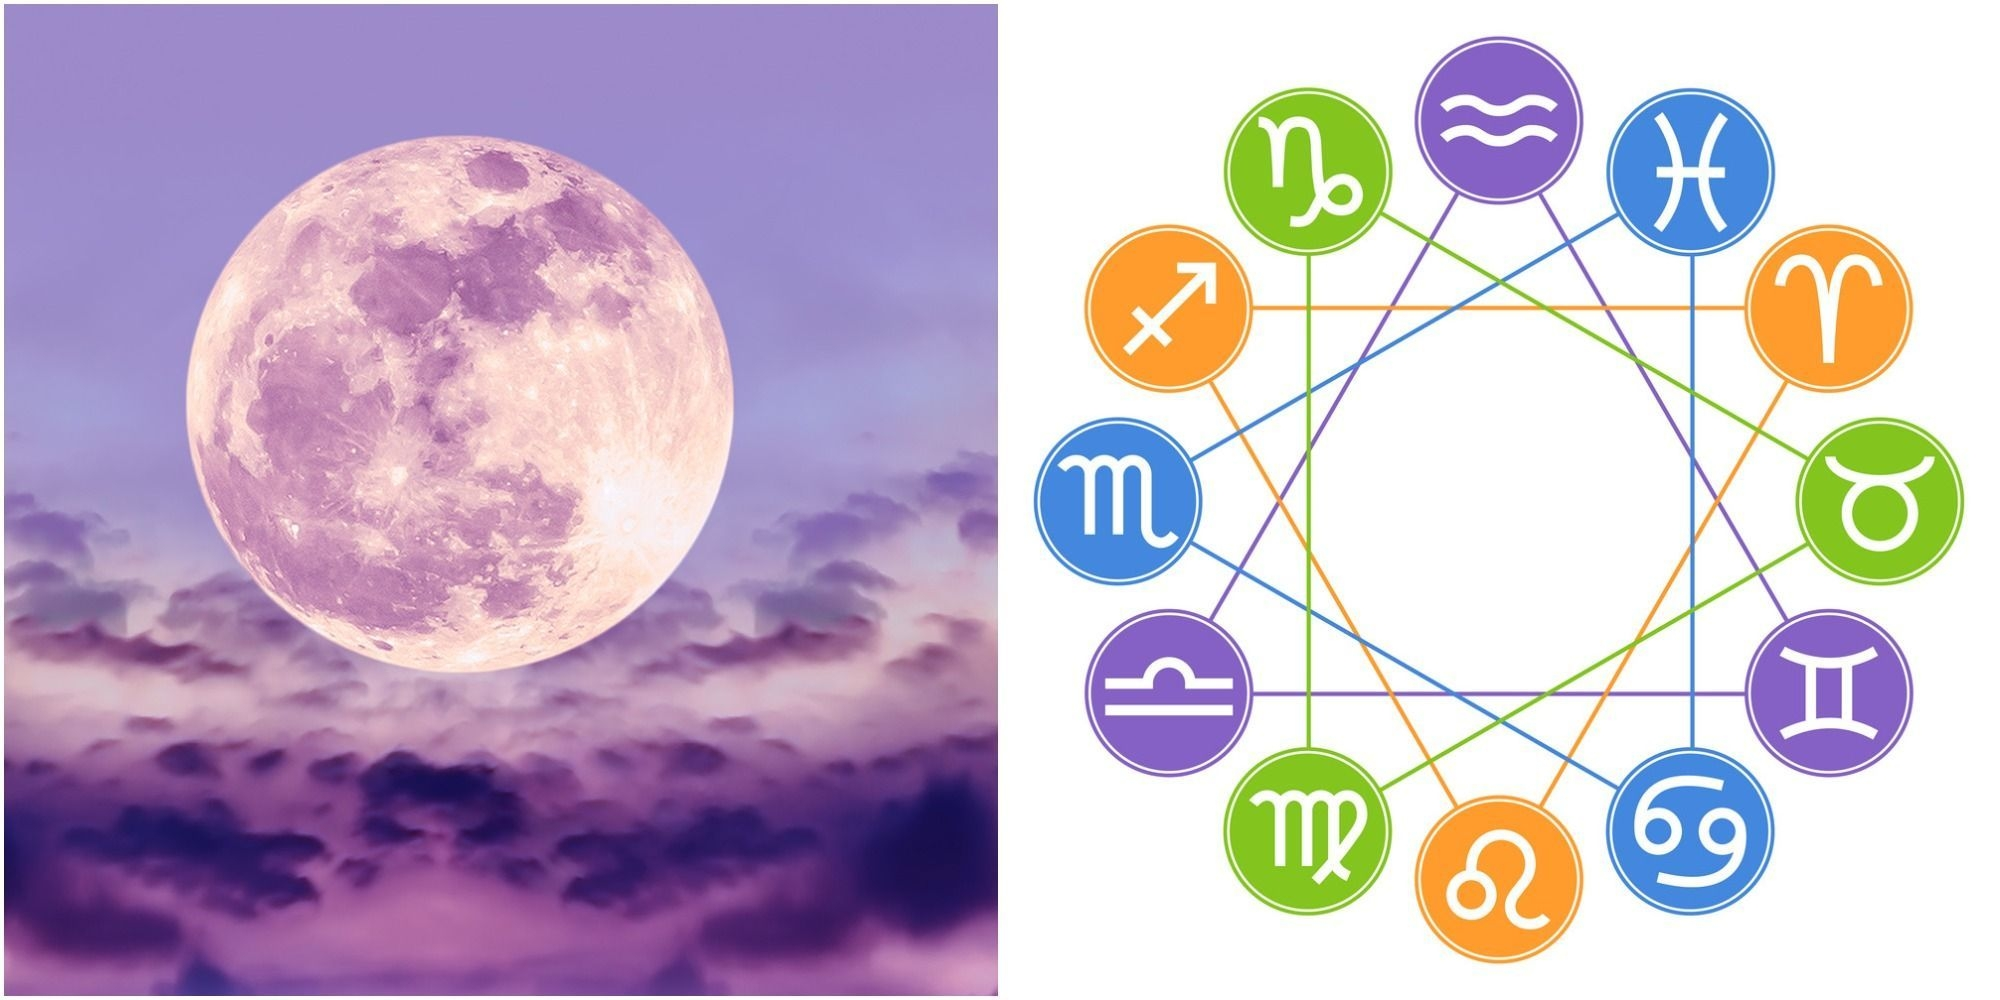 Every Full Moon In 2020 With Their Dates & Zodiac Explained